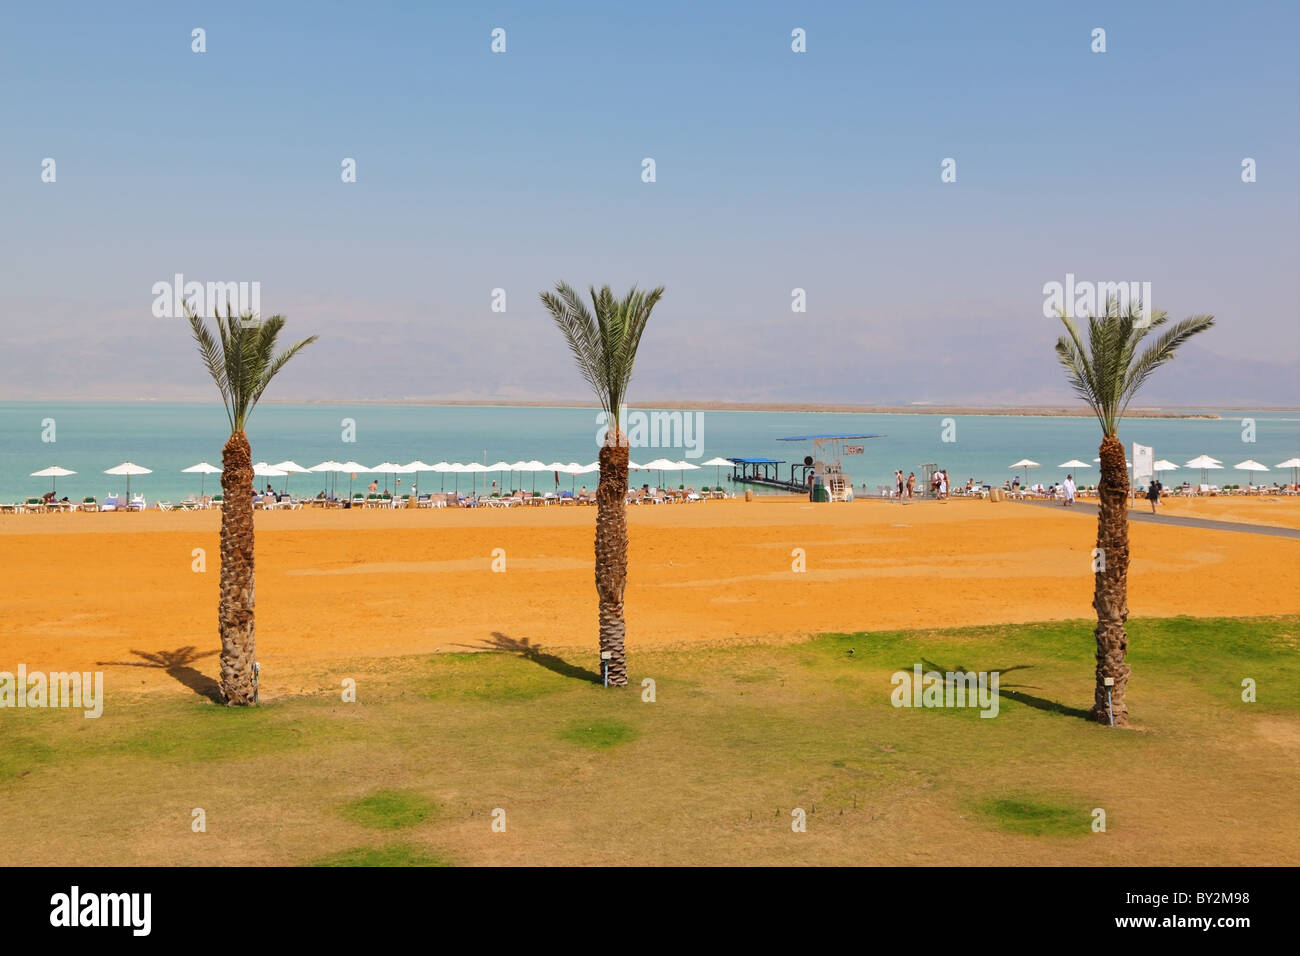 Medical beach luxury hotel at the Dead Sea in Israel. Sunny spring day - Stock Image